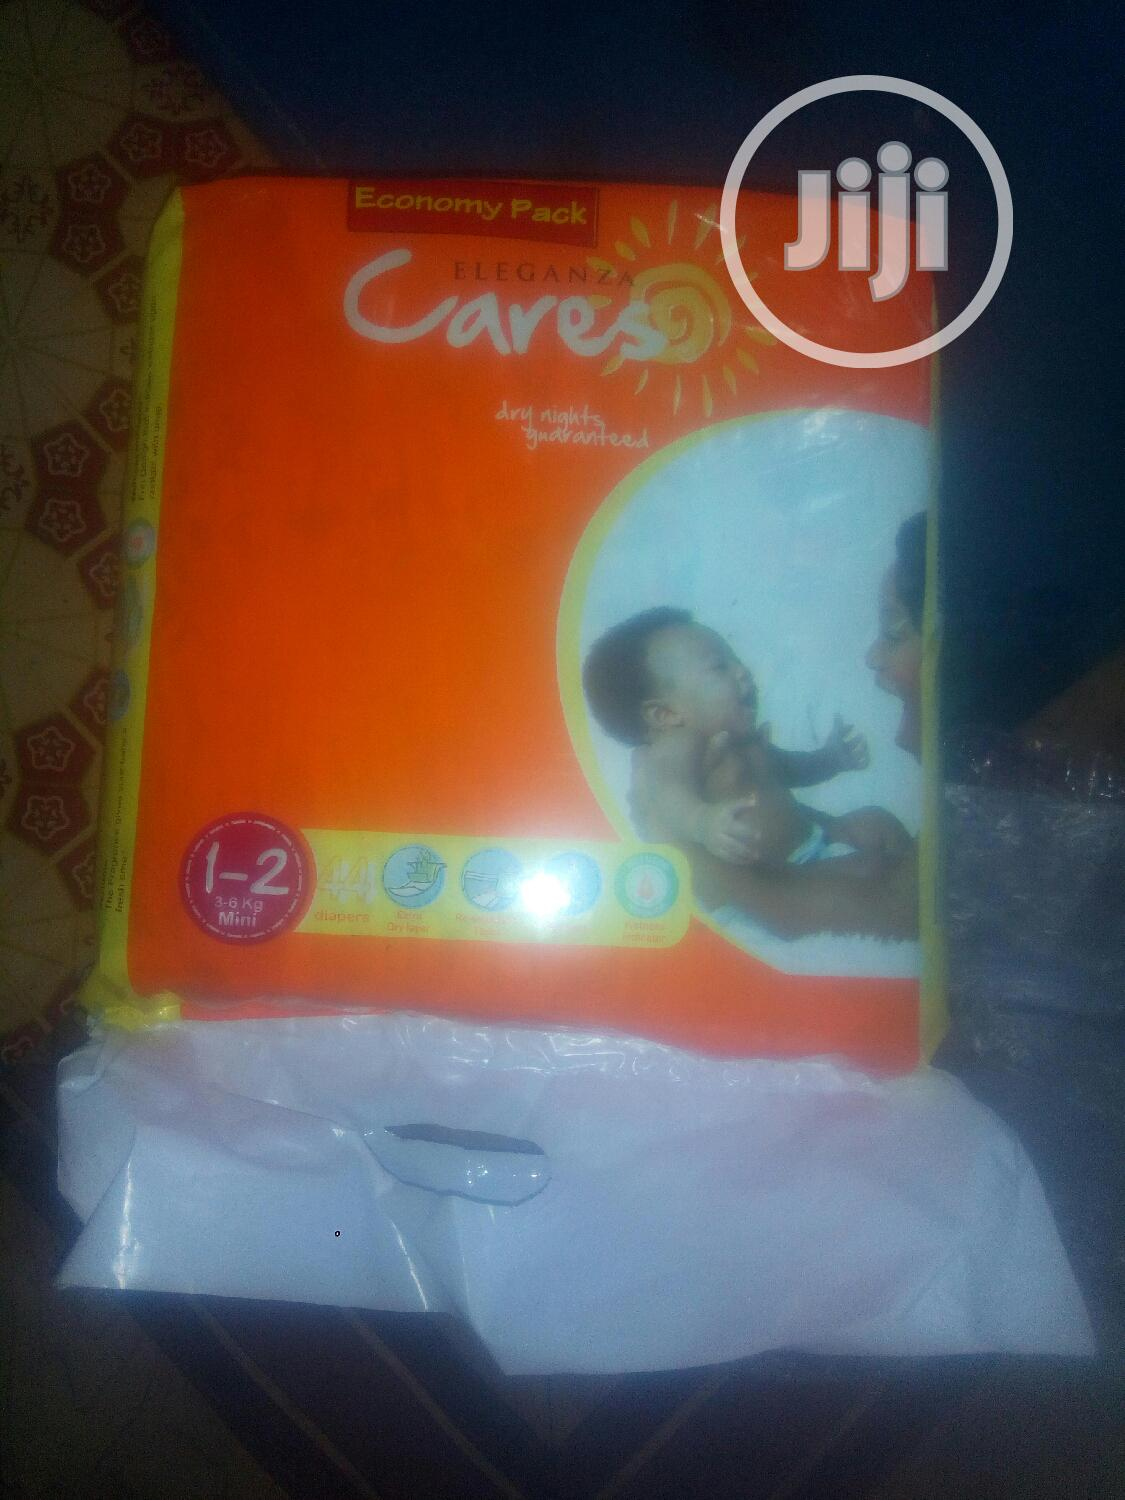 Diapers Eleganza Economy Pack (44 Packs) | Baby & Child Care for sale in Dei-Dei, Abuja (FCT) State, Nigeria